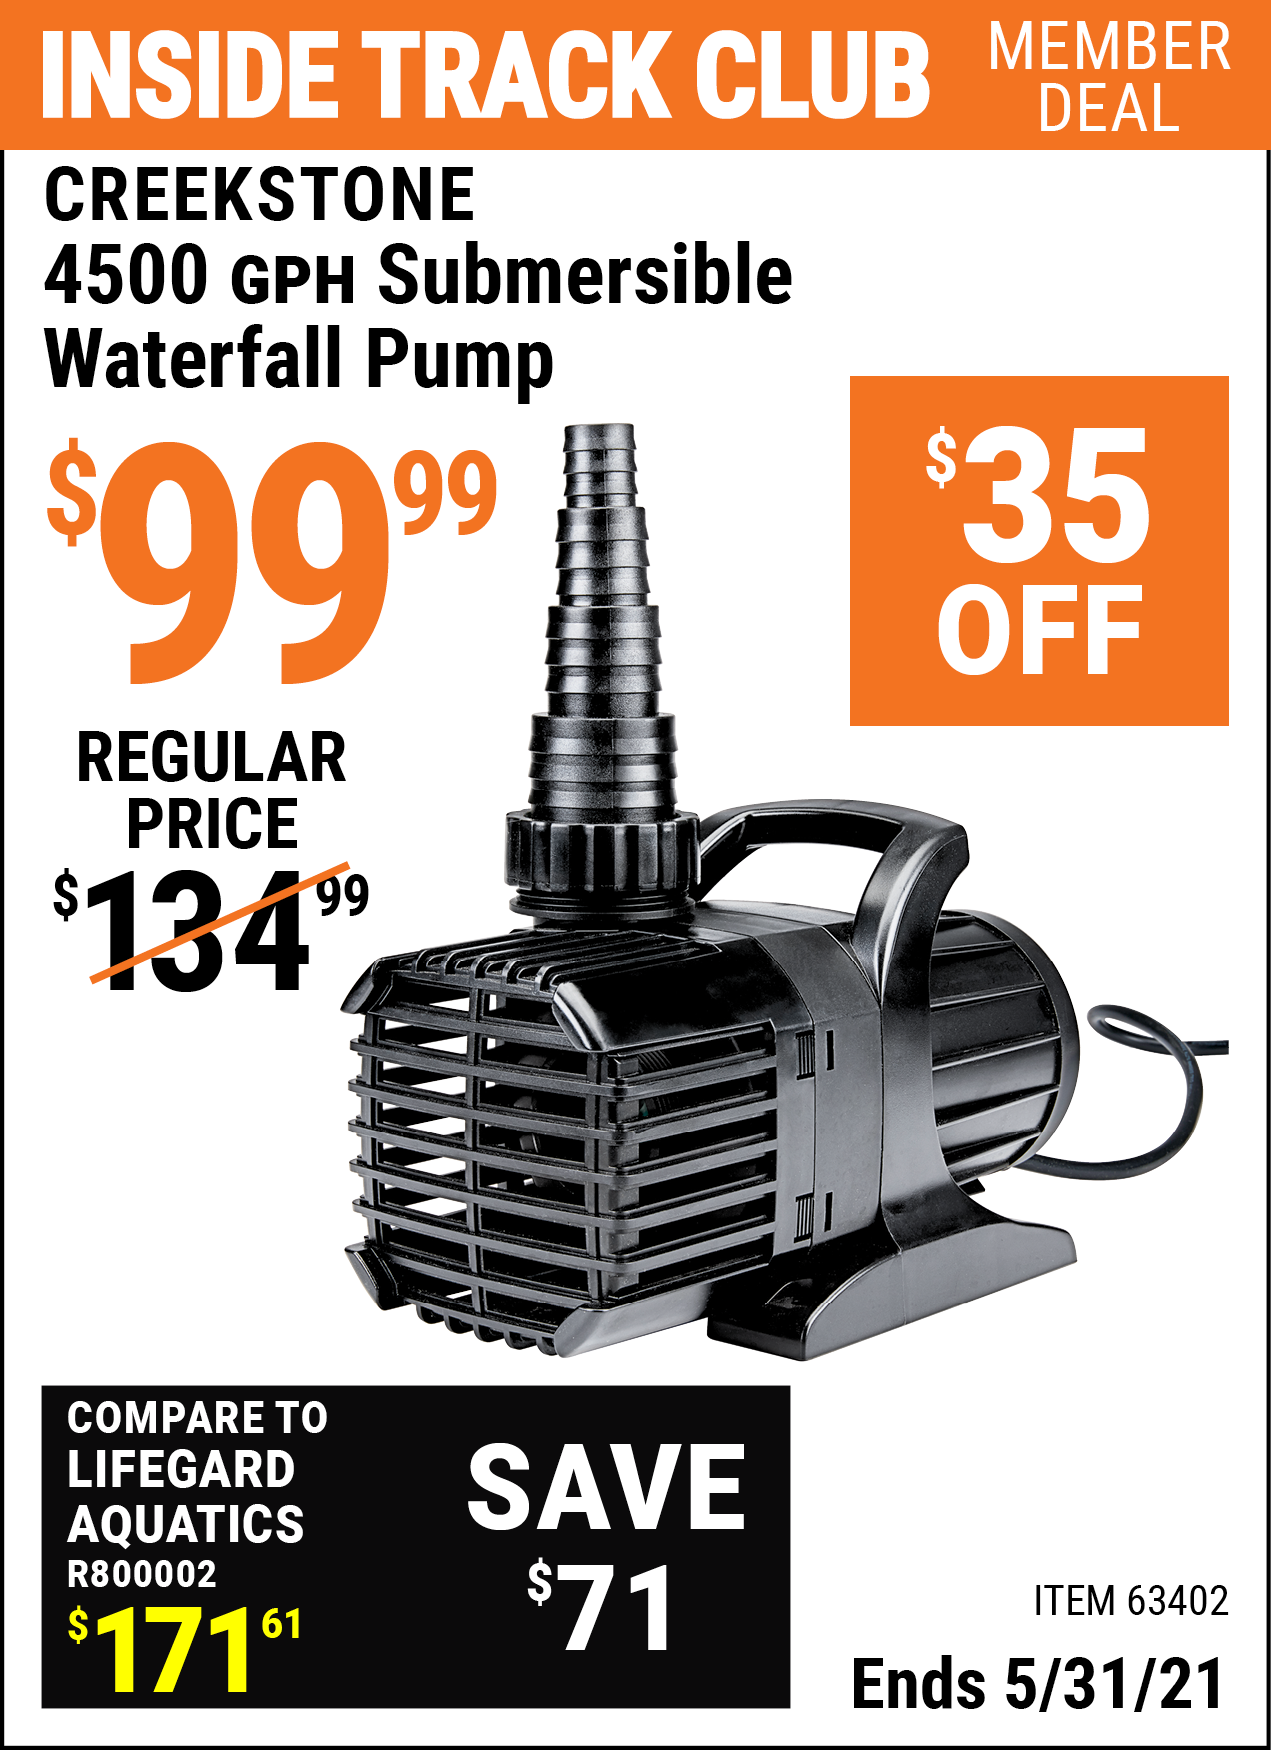 Inside Track Club members can buy the CREEKSTONE 4500 GPH Submersible Waterfall Pump (Item 63402) for $99.99, valid through 5/31/2021.